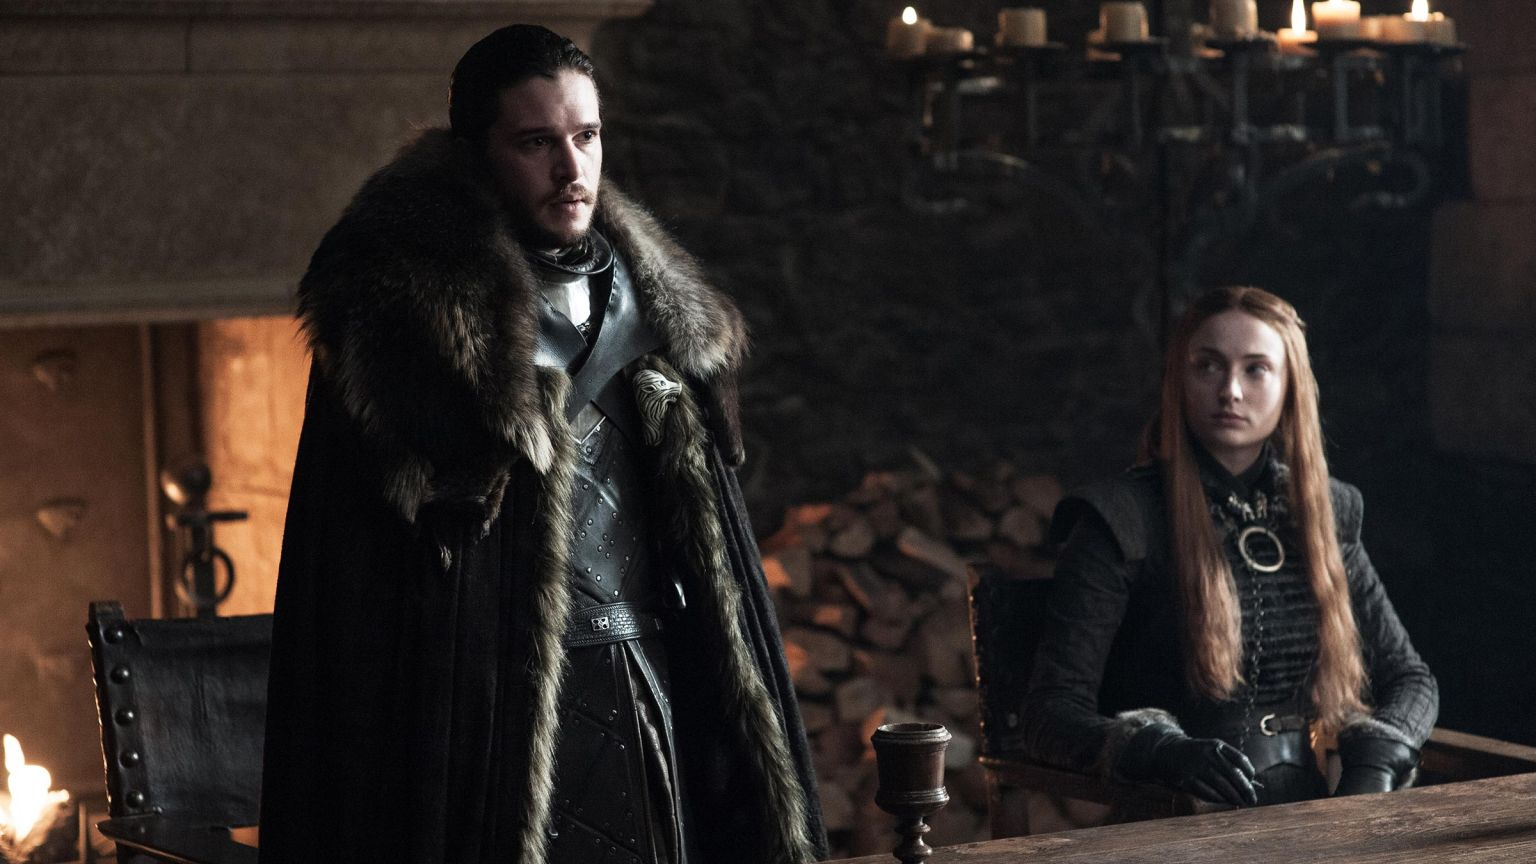 Kit Haringon as Jon Snow, Sophie Turner as Sansa Stark. Photo: Helen Sloan/HBO